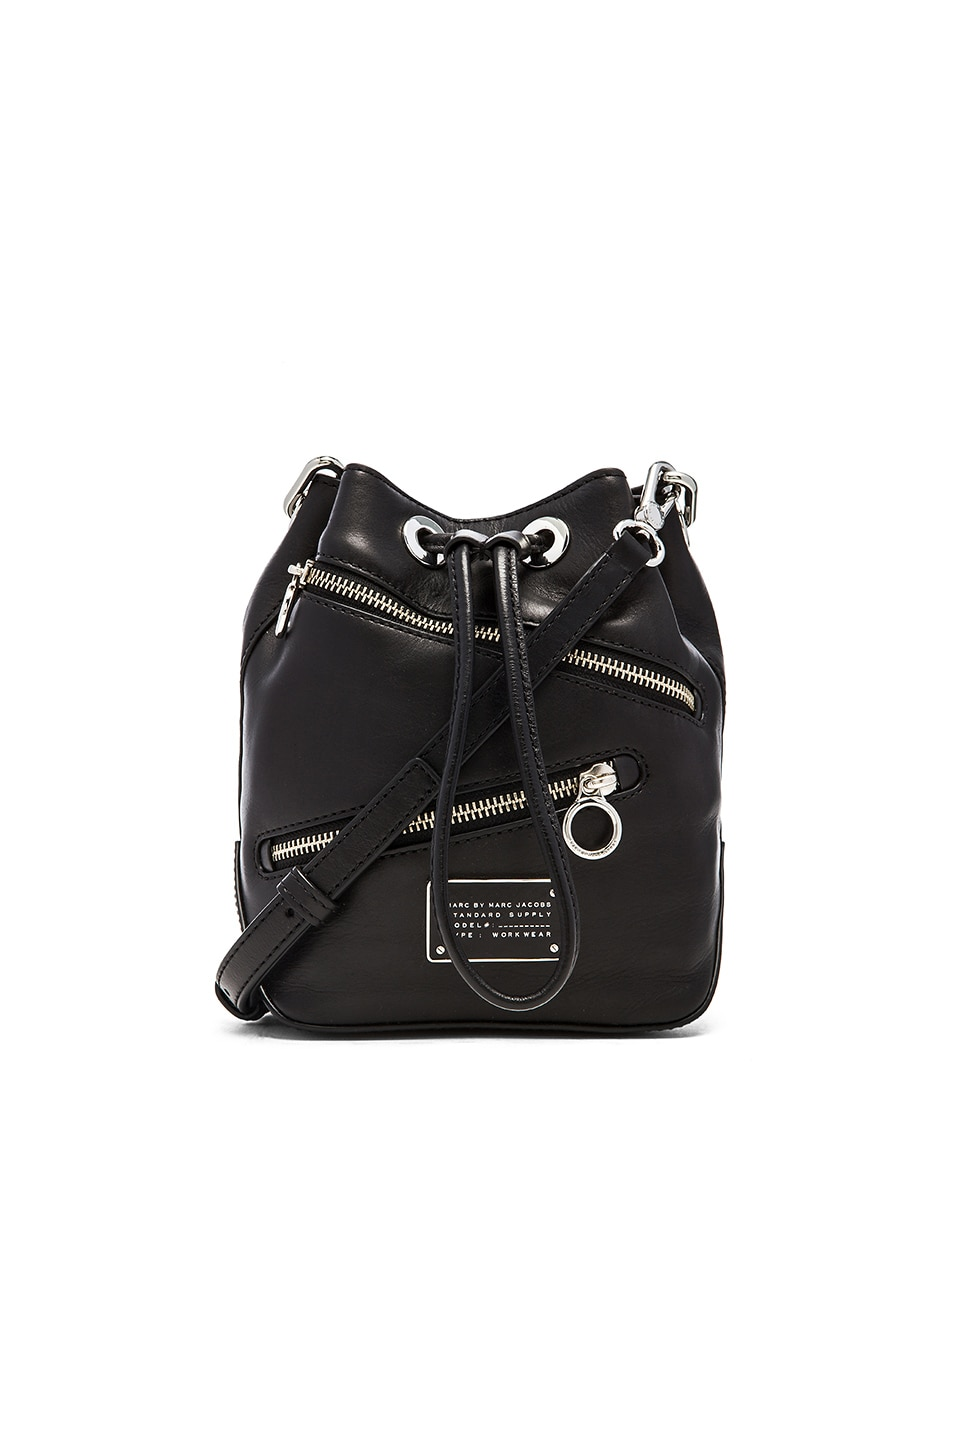 Marc by Marc Jacobs New Too Hot To Handle Zippers Small Bucket Bag in Black